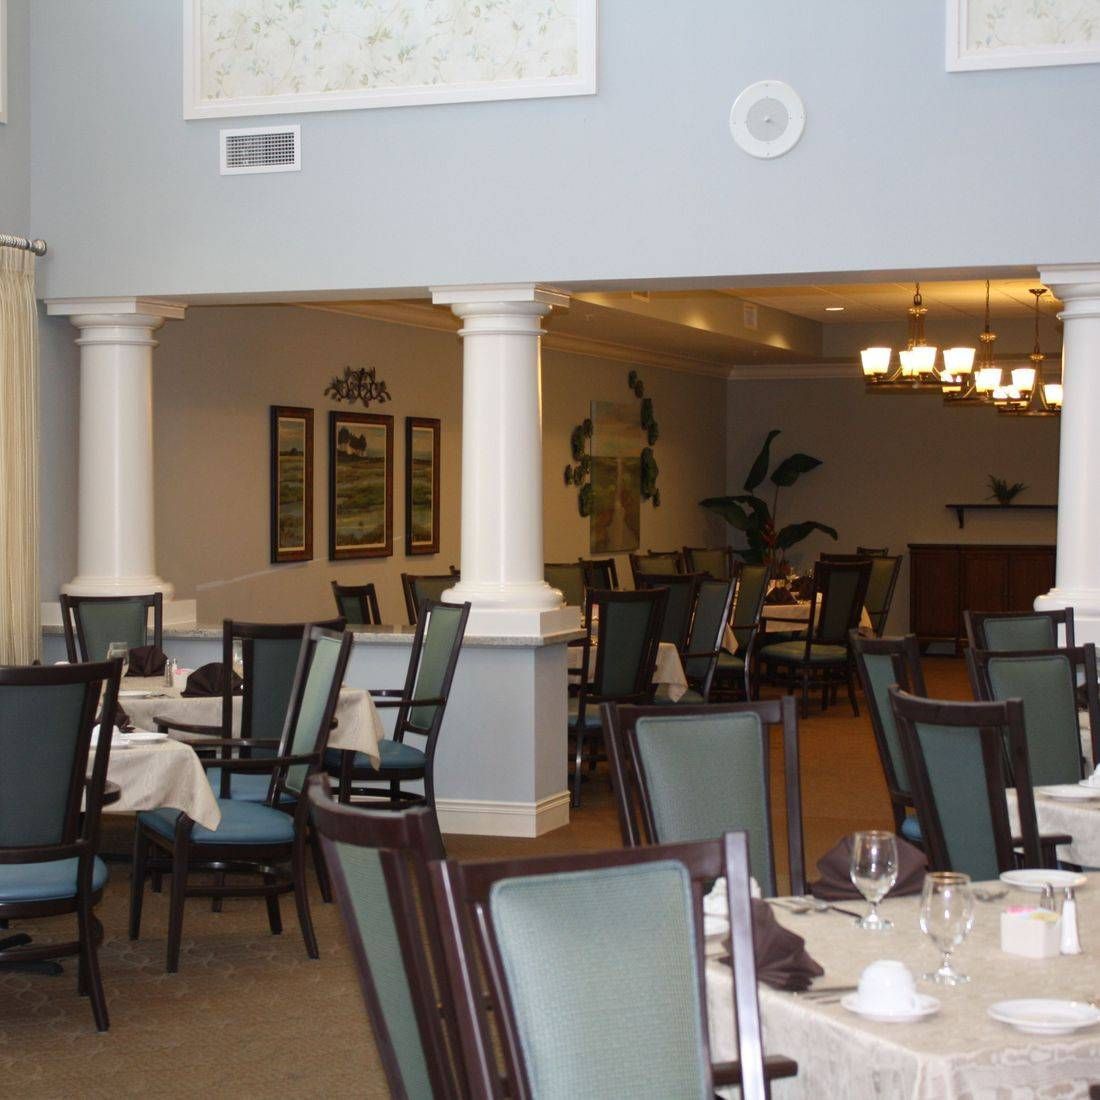 rand Dining Room atSumter Place by the Creative Design Team